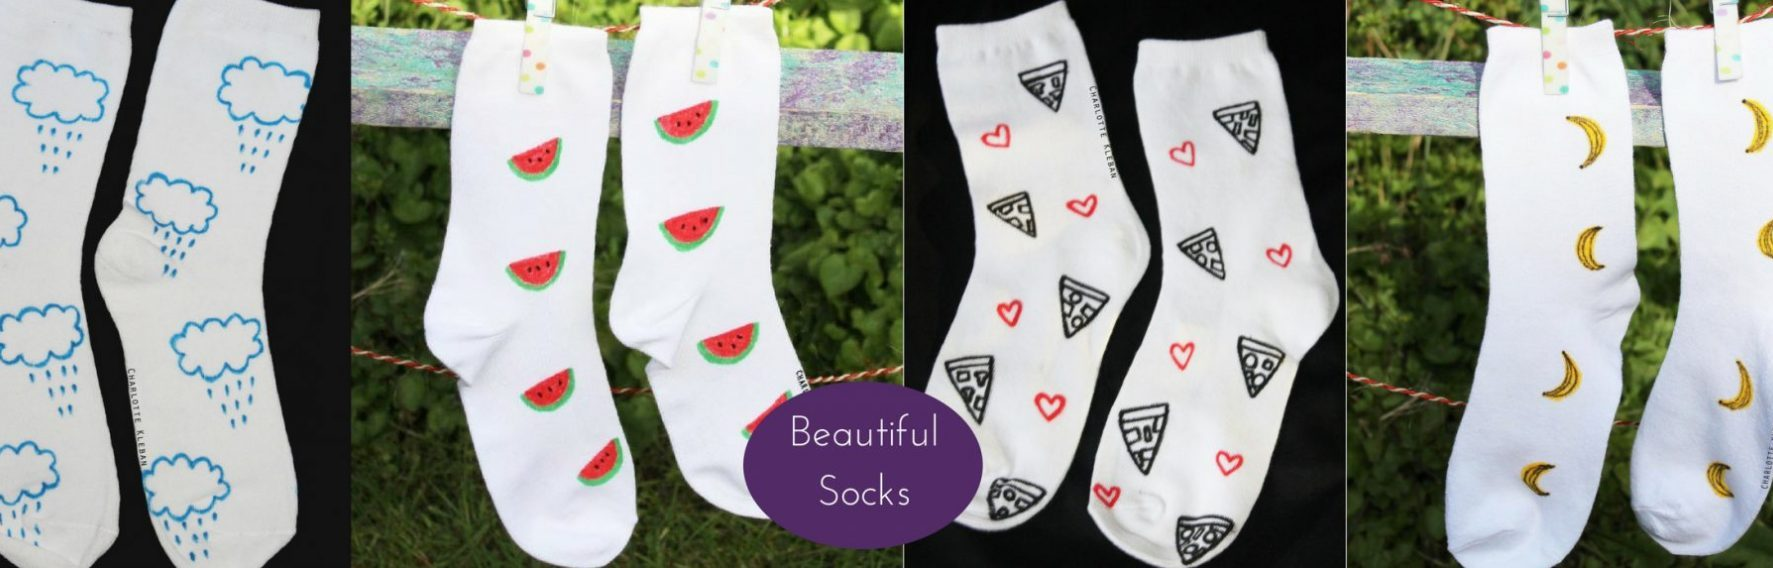 Hand Drawn World By Charlotte Kleban Socks